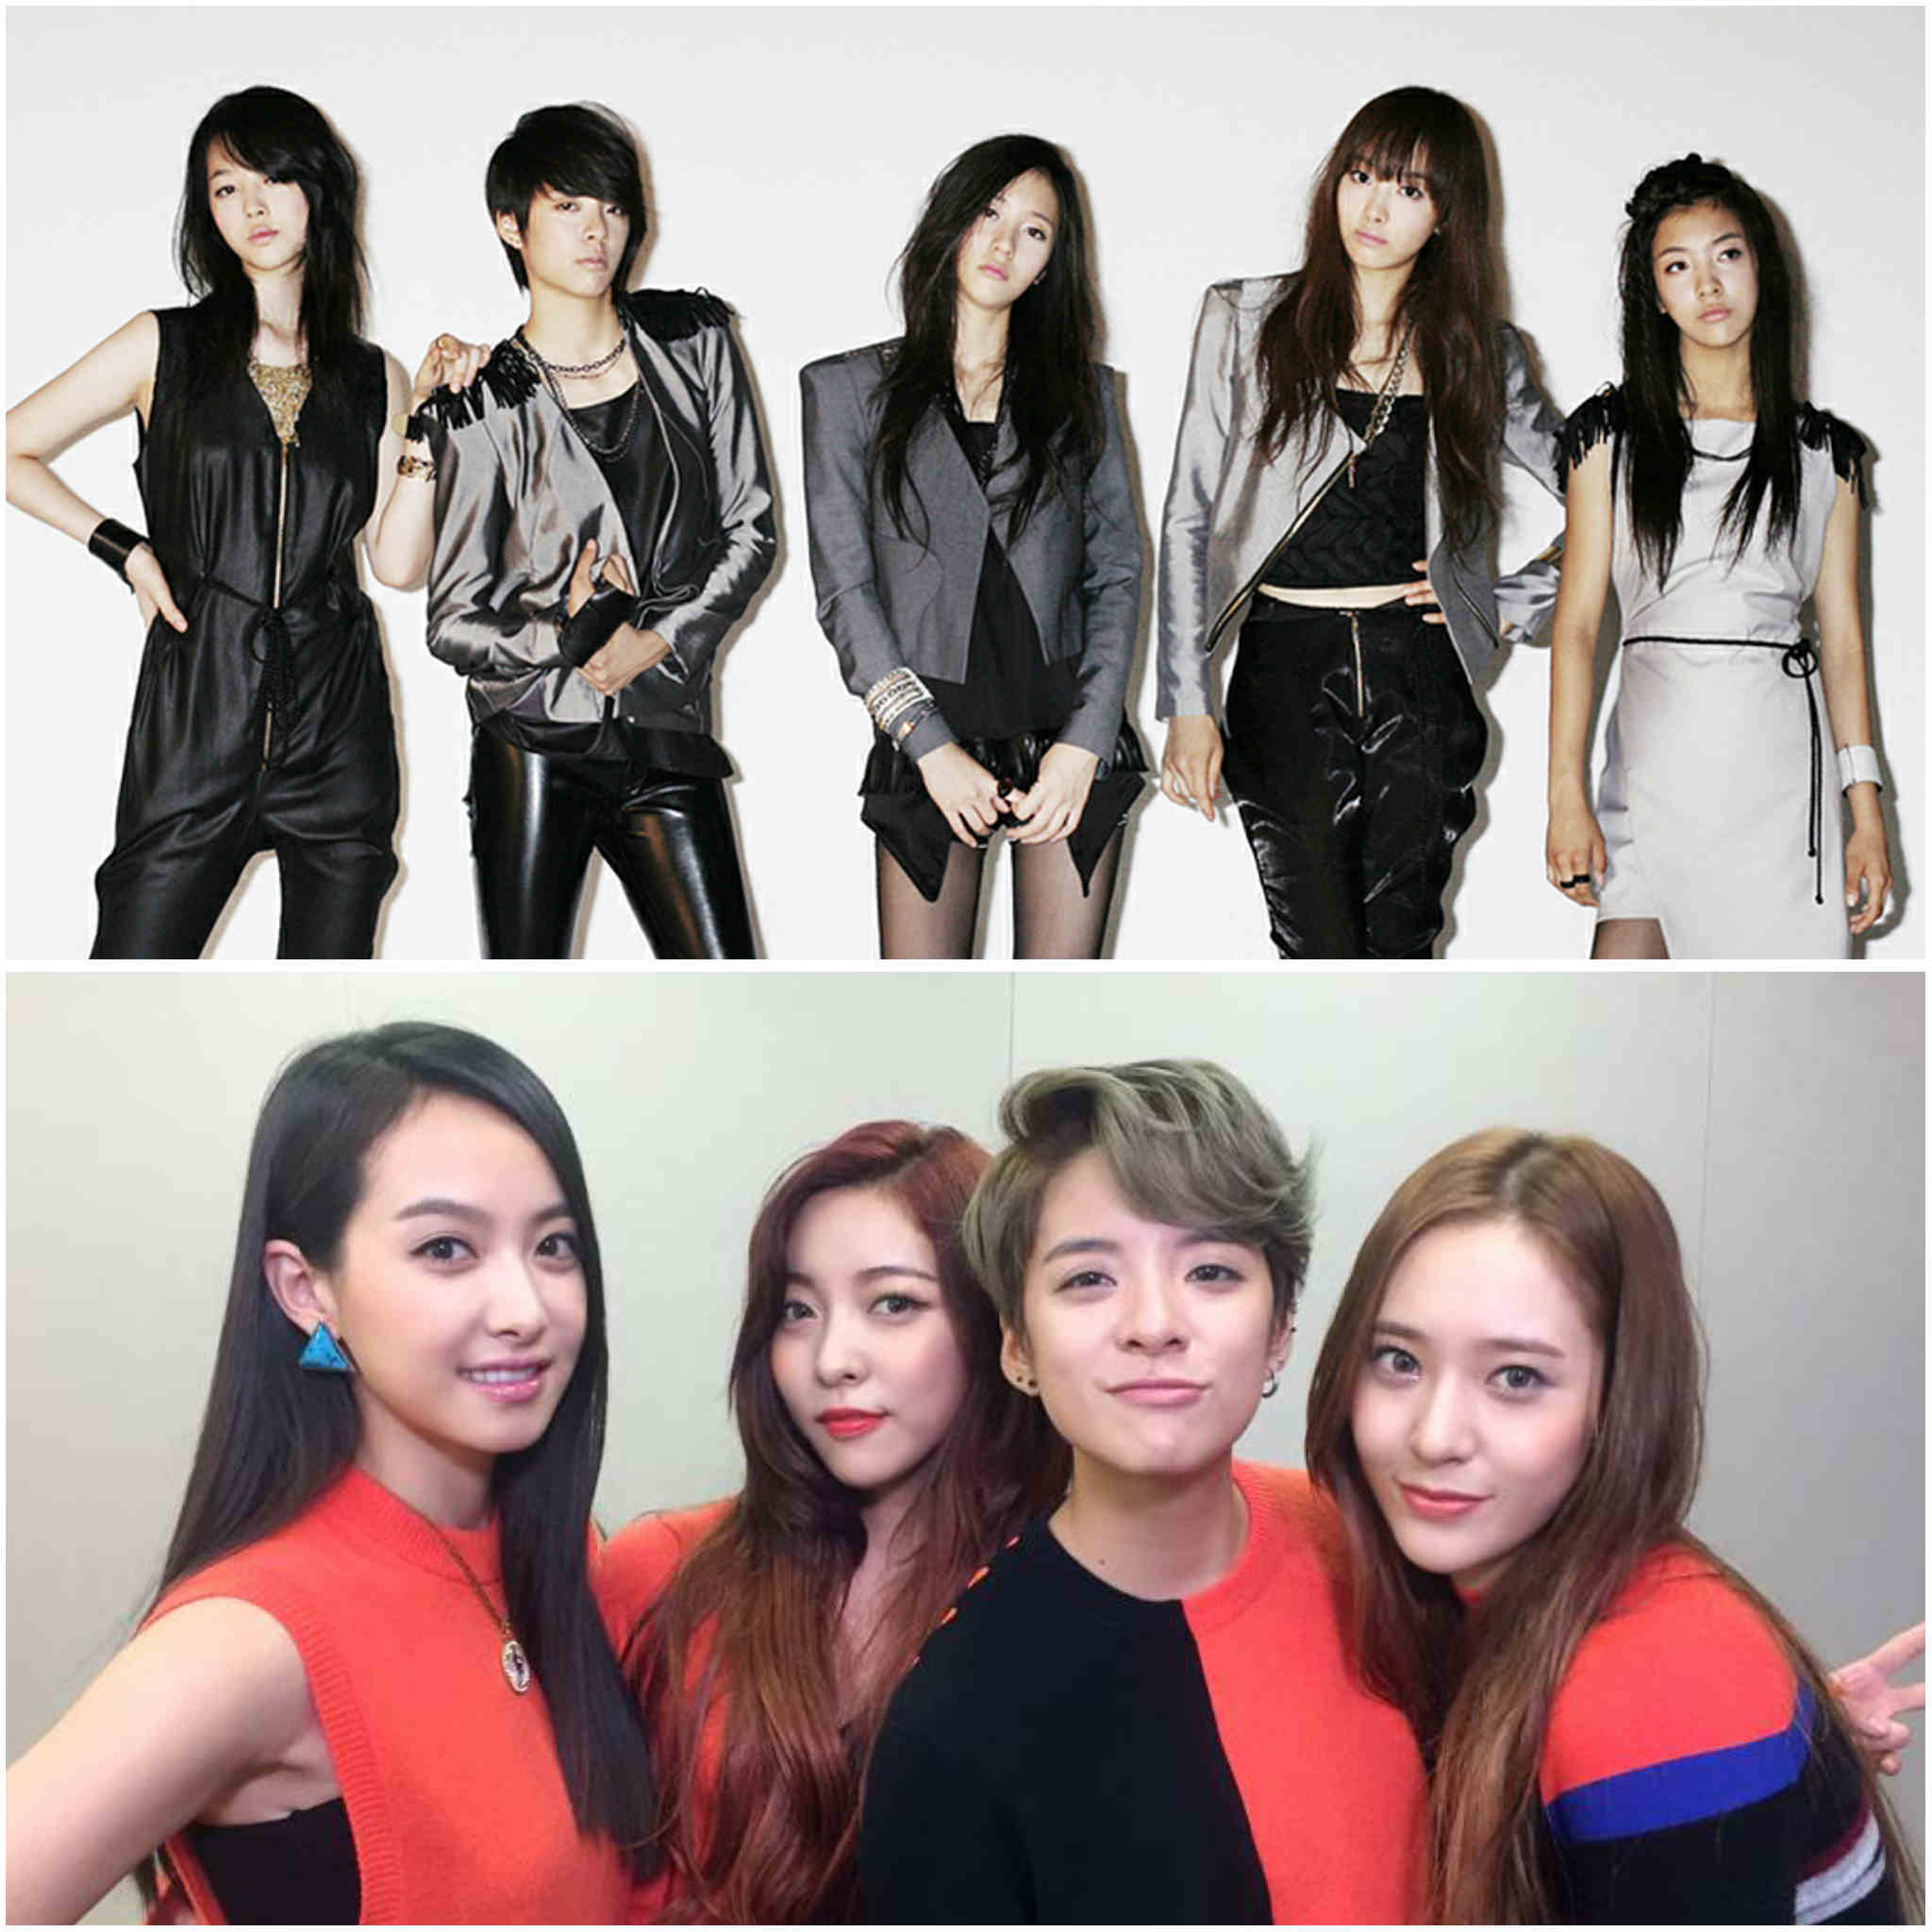 2nd generation K-pop groups - f(x)